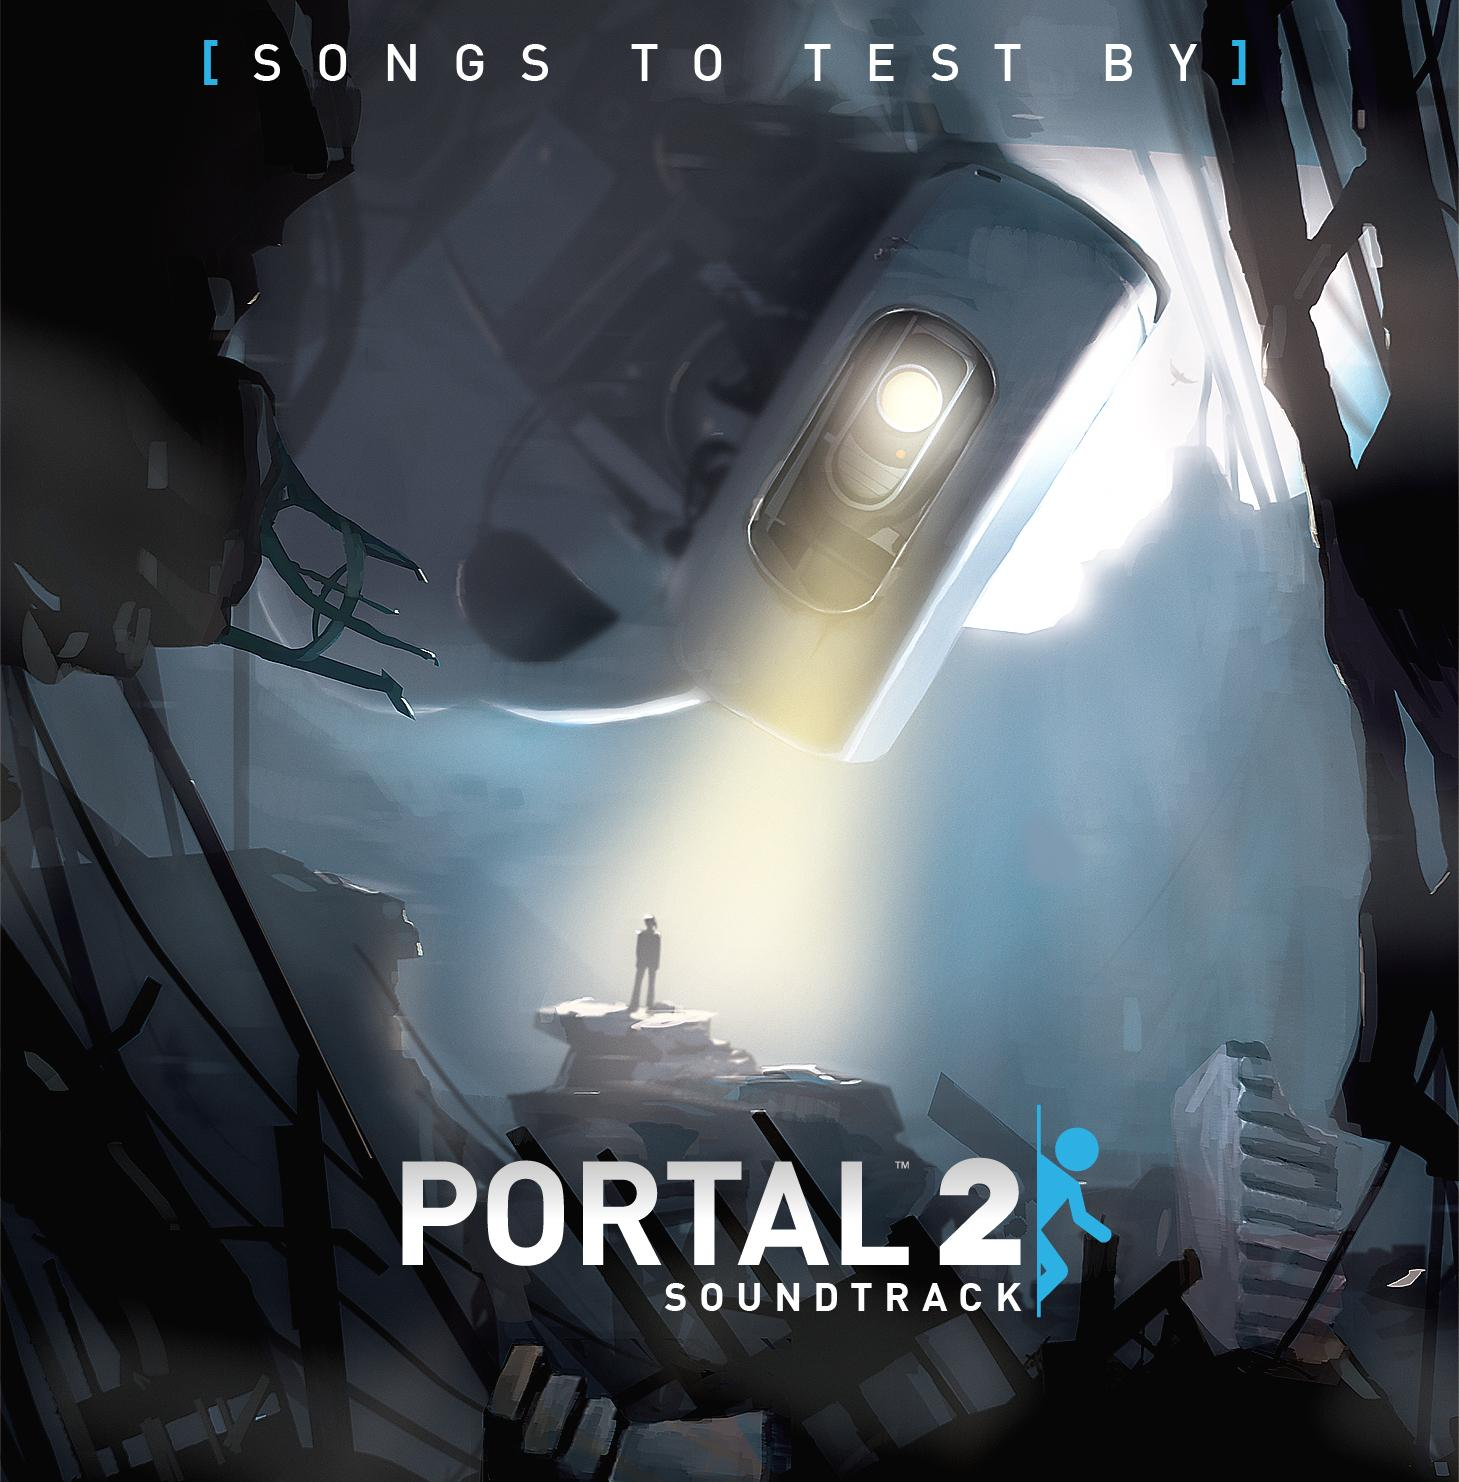 Songs to Test by - The Portal 2 Soundtrack (inspired the album name)